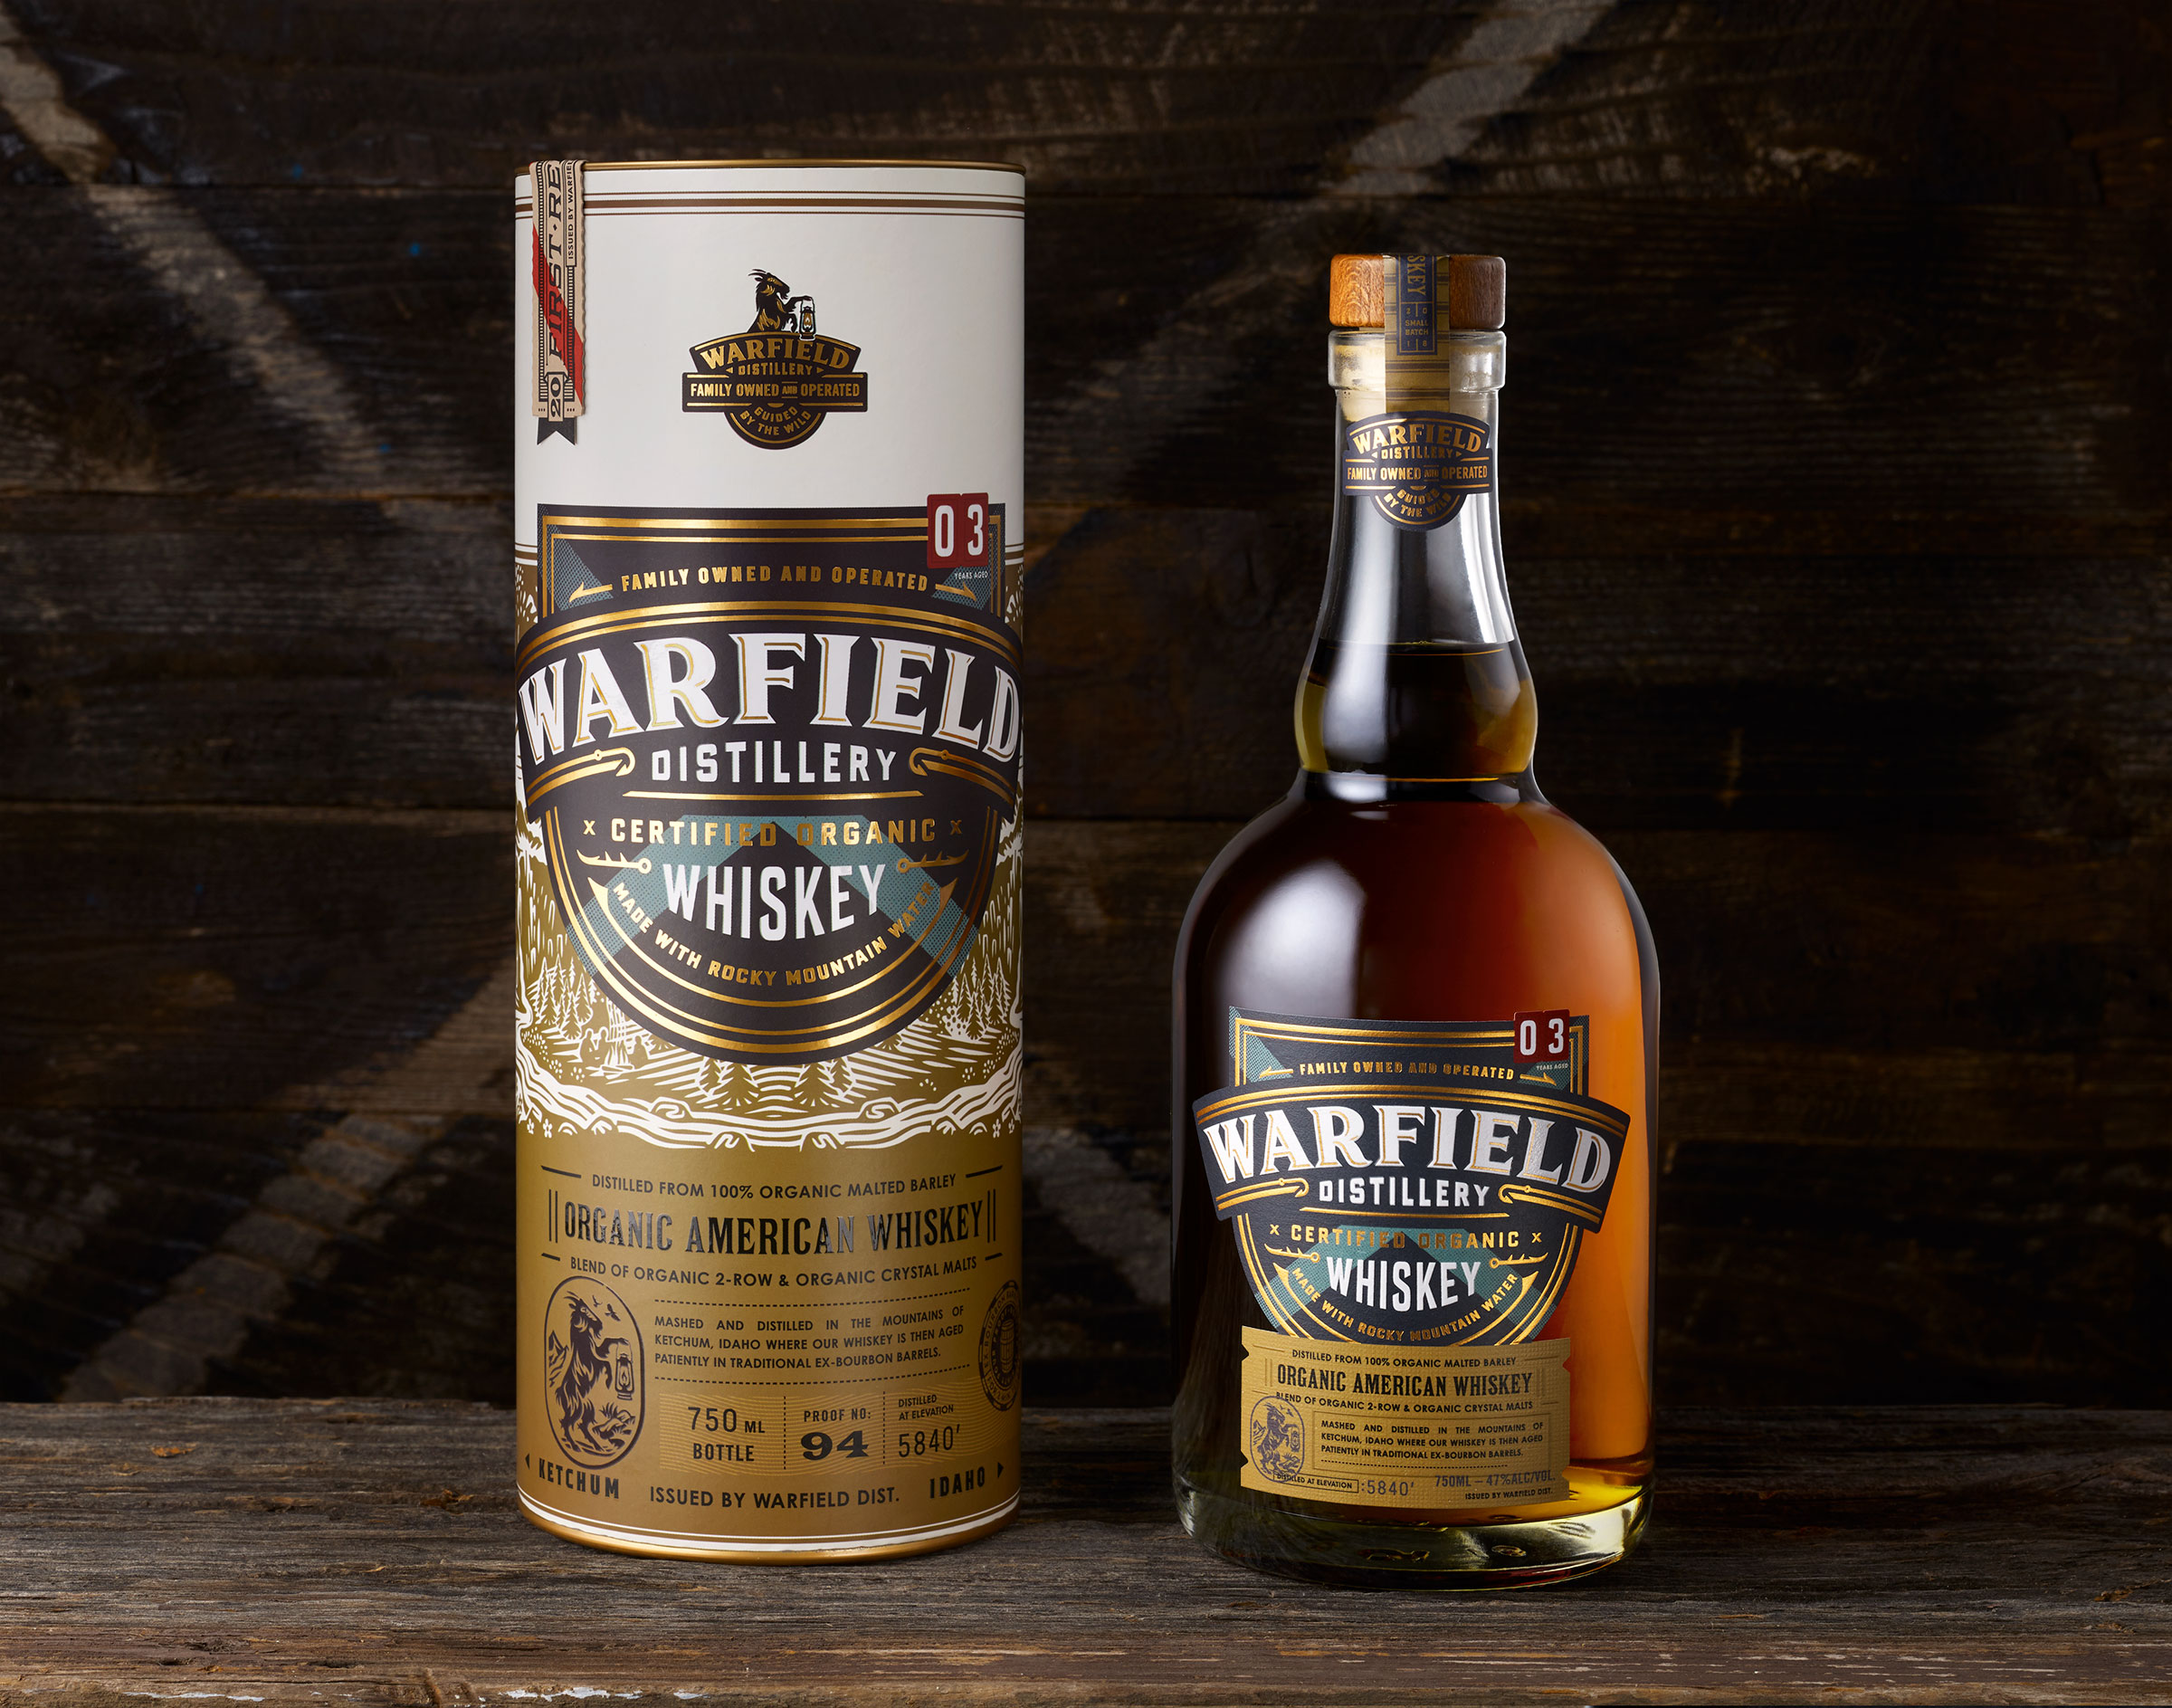 image of Warfield Whiskey courtesy of Warfield Distillery & Brewery